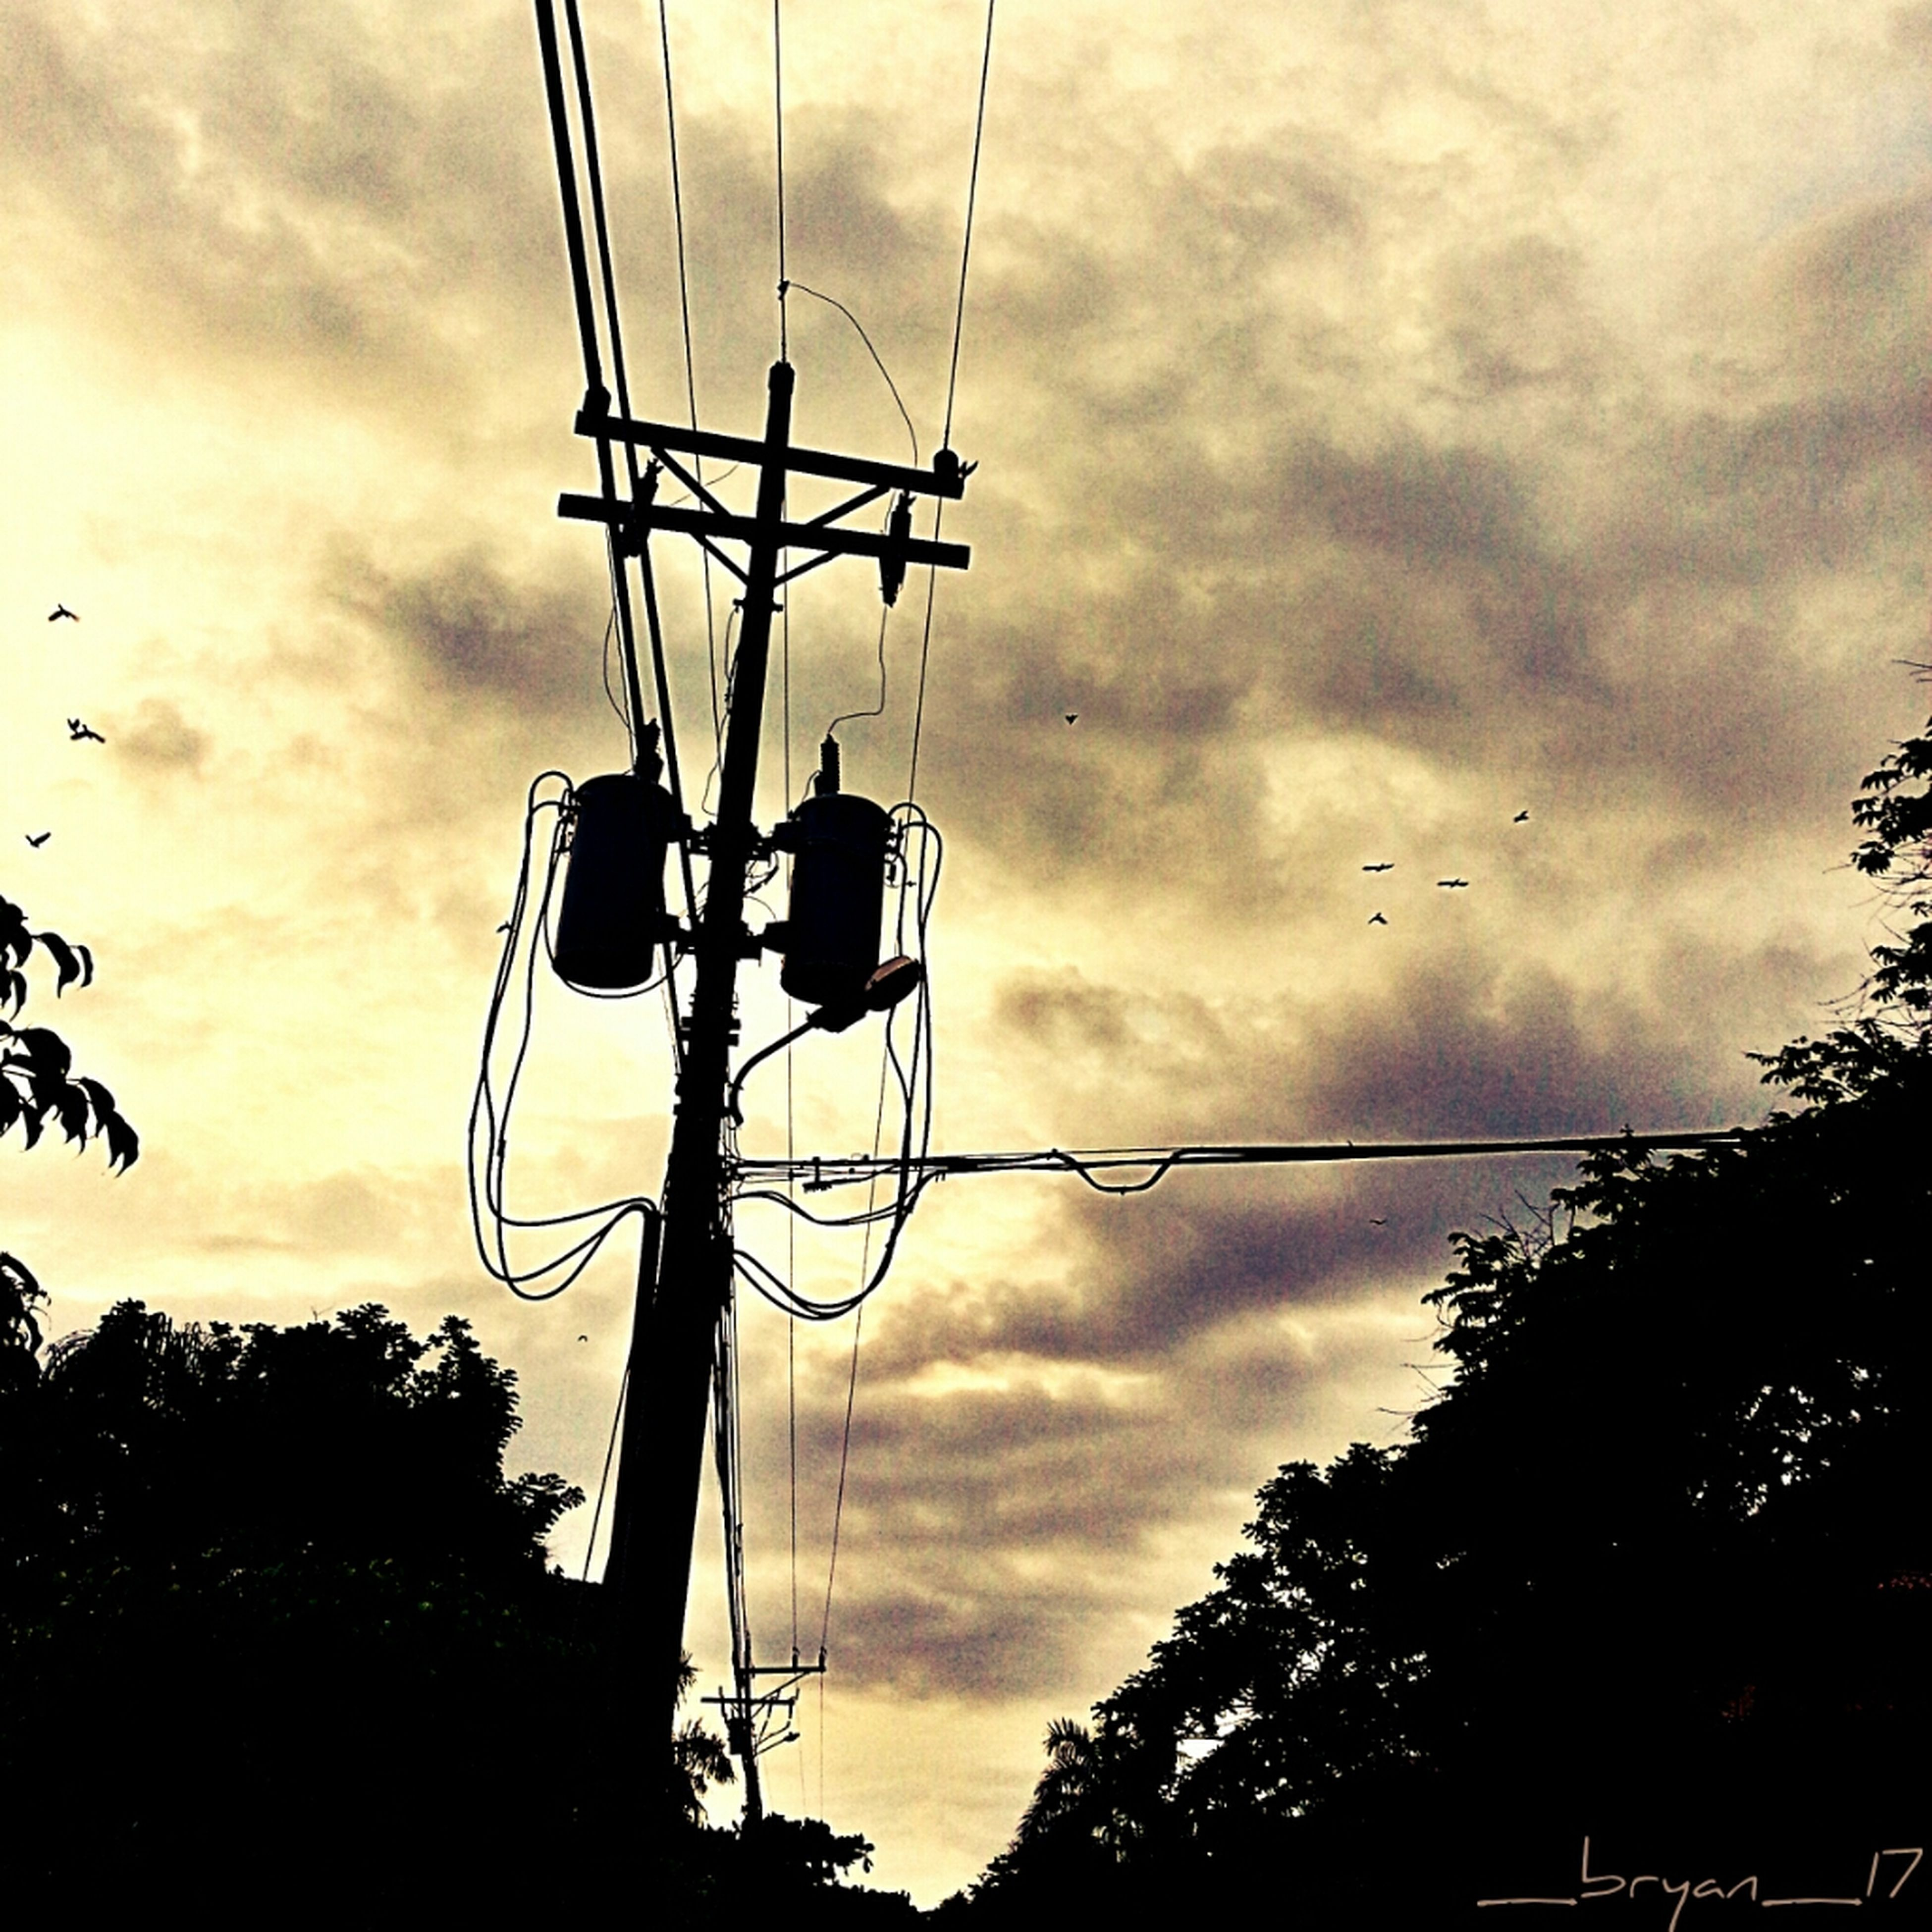 Mobile Photography Taking Photos Sky And Clouds Cabling